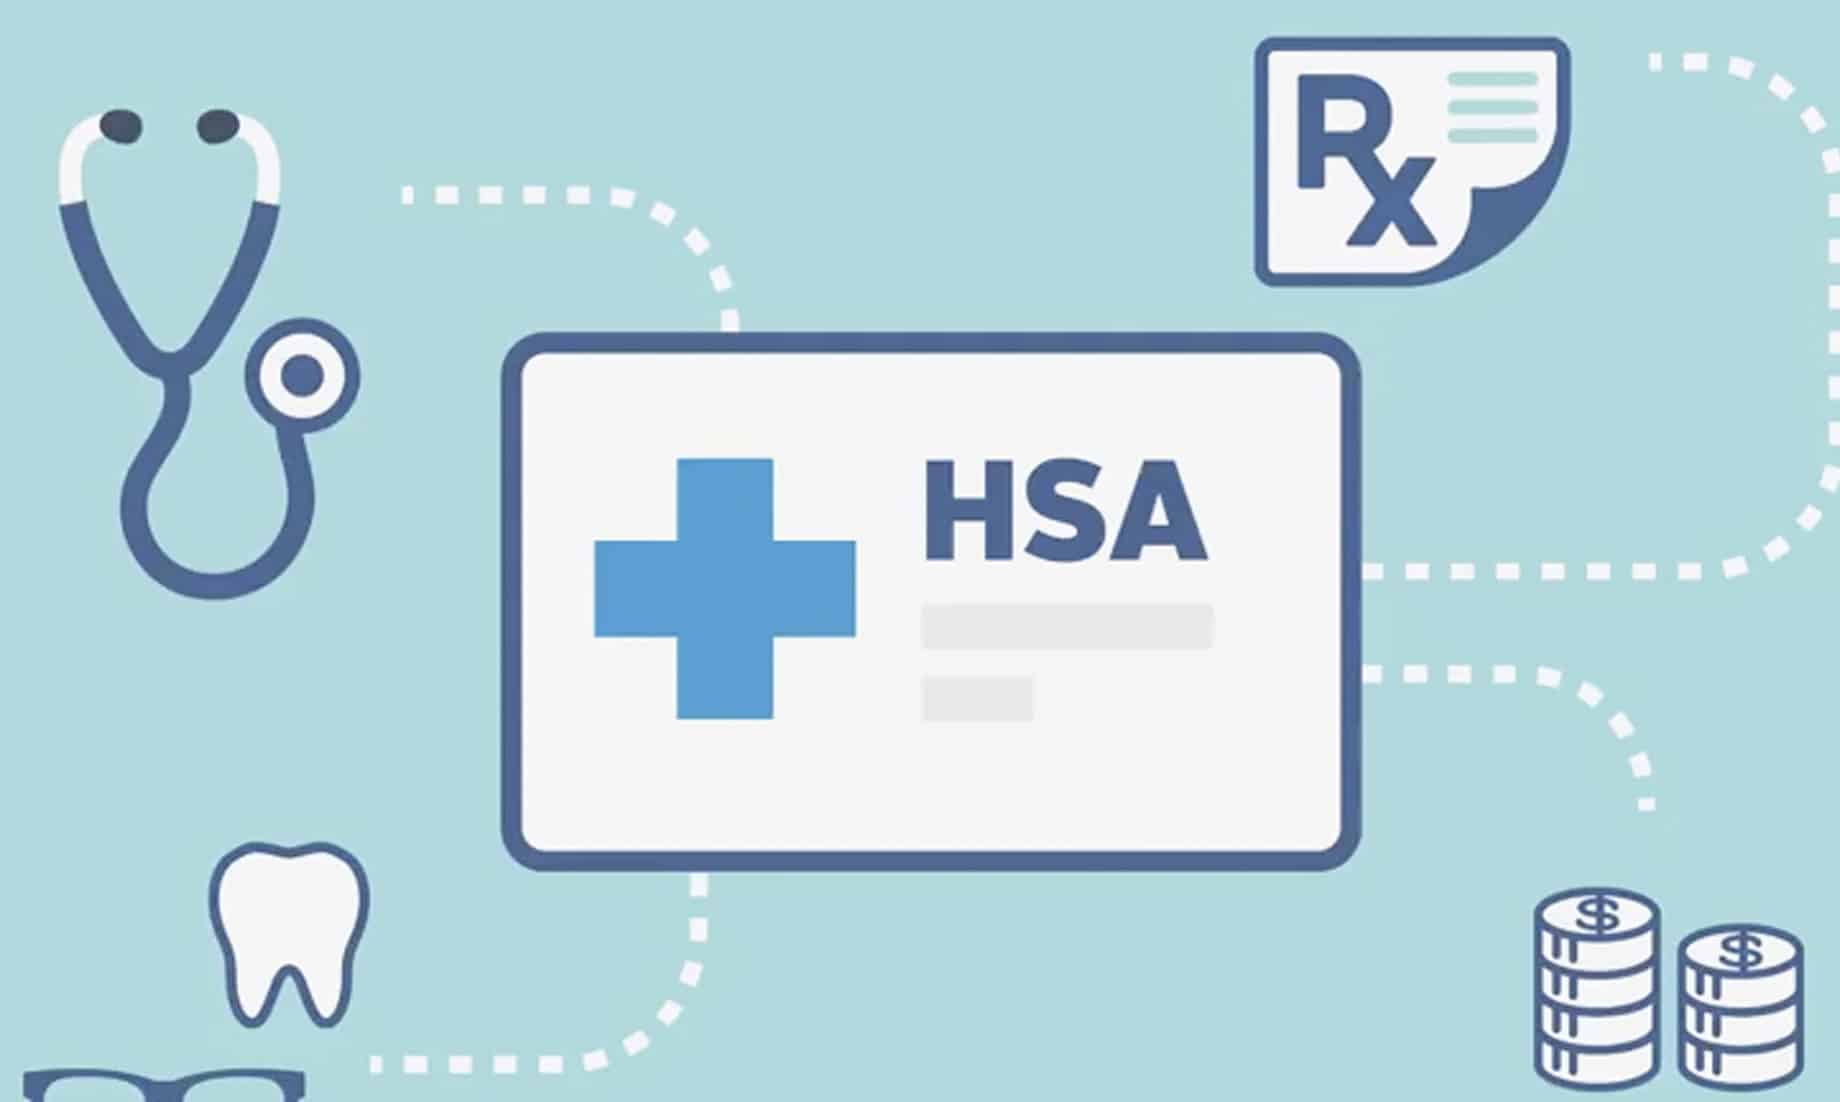 The Best Places To Open An HSA (Health Savings Account)